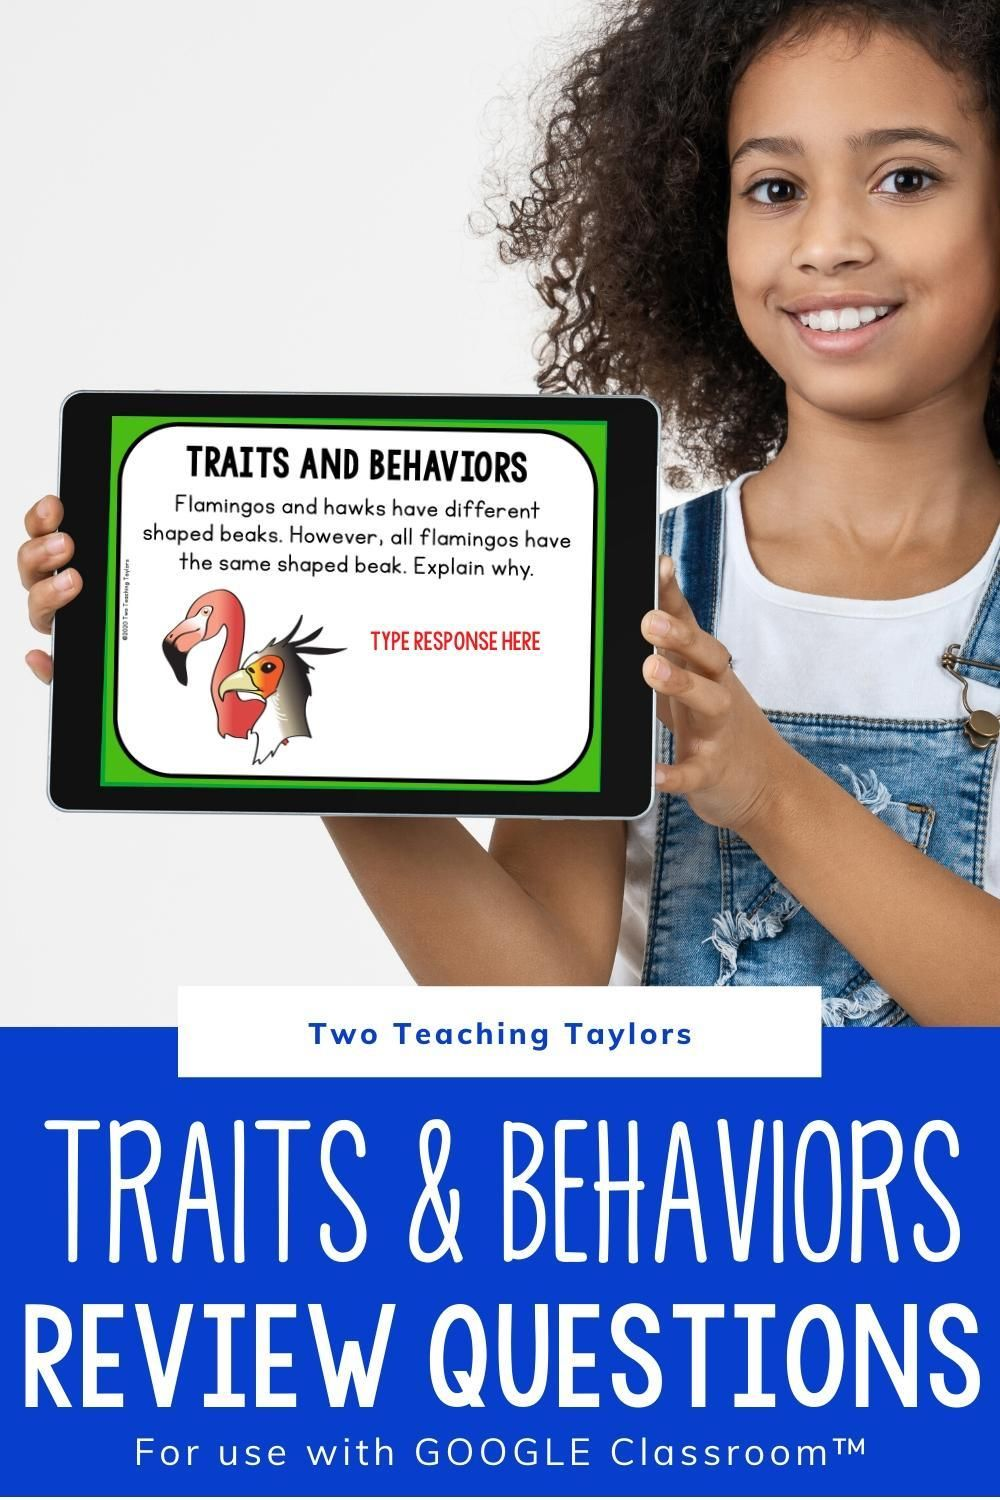 Inherited Traits And Learned Behaviors Review Questions Distance Learning In 2020 Learned Behaviors Distance Learning This Or That Questions